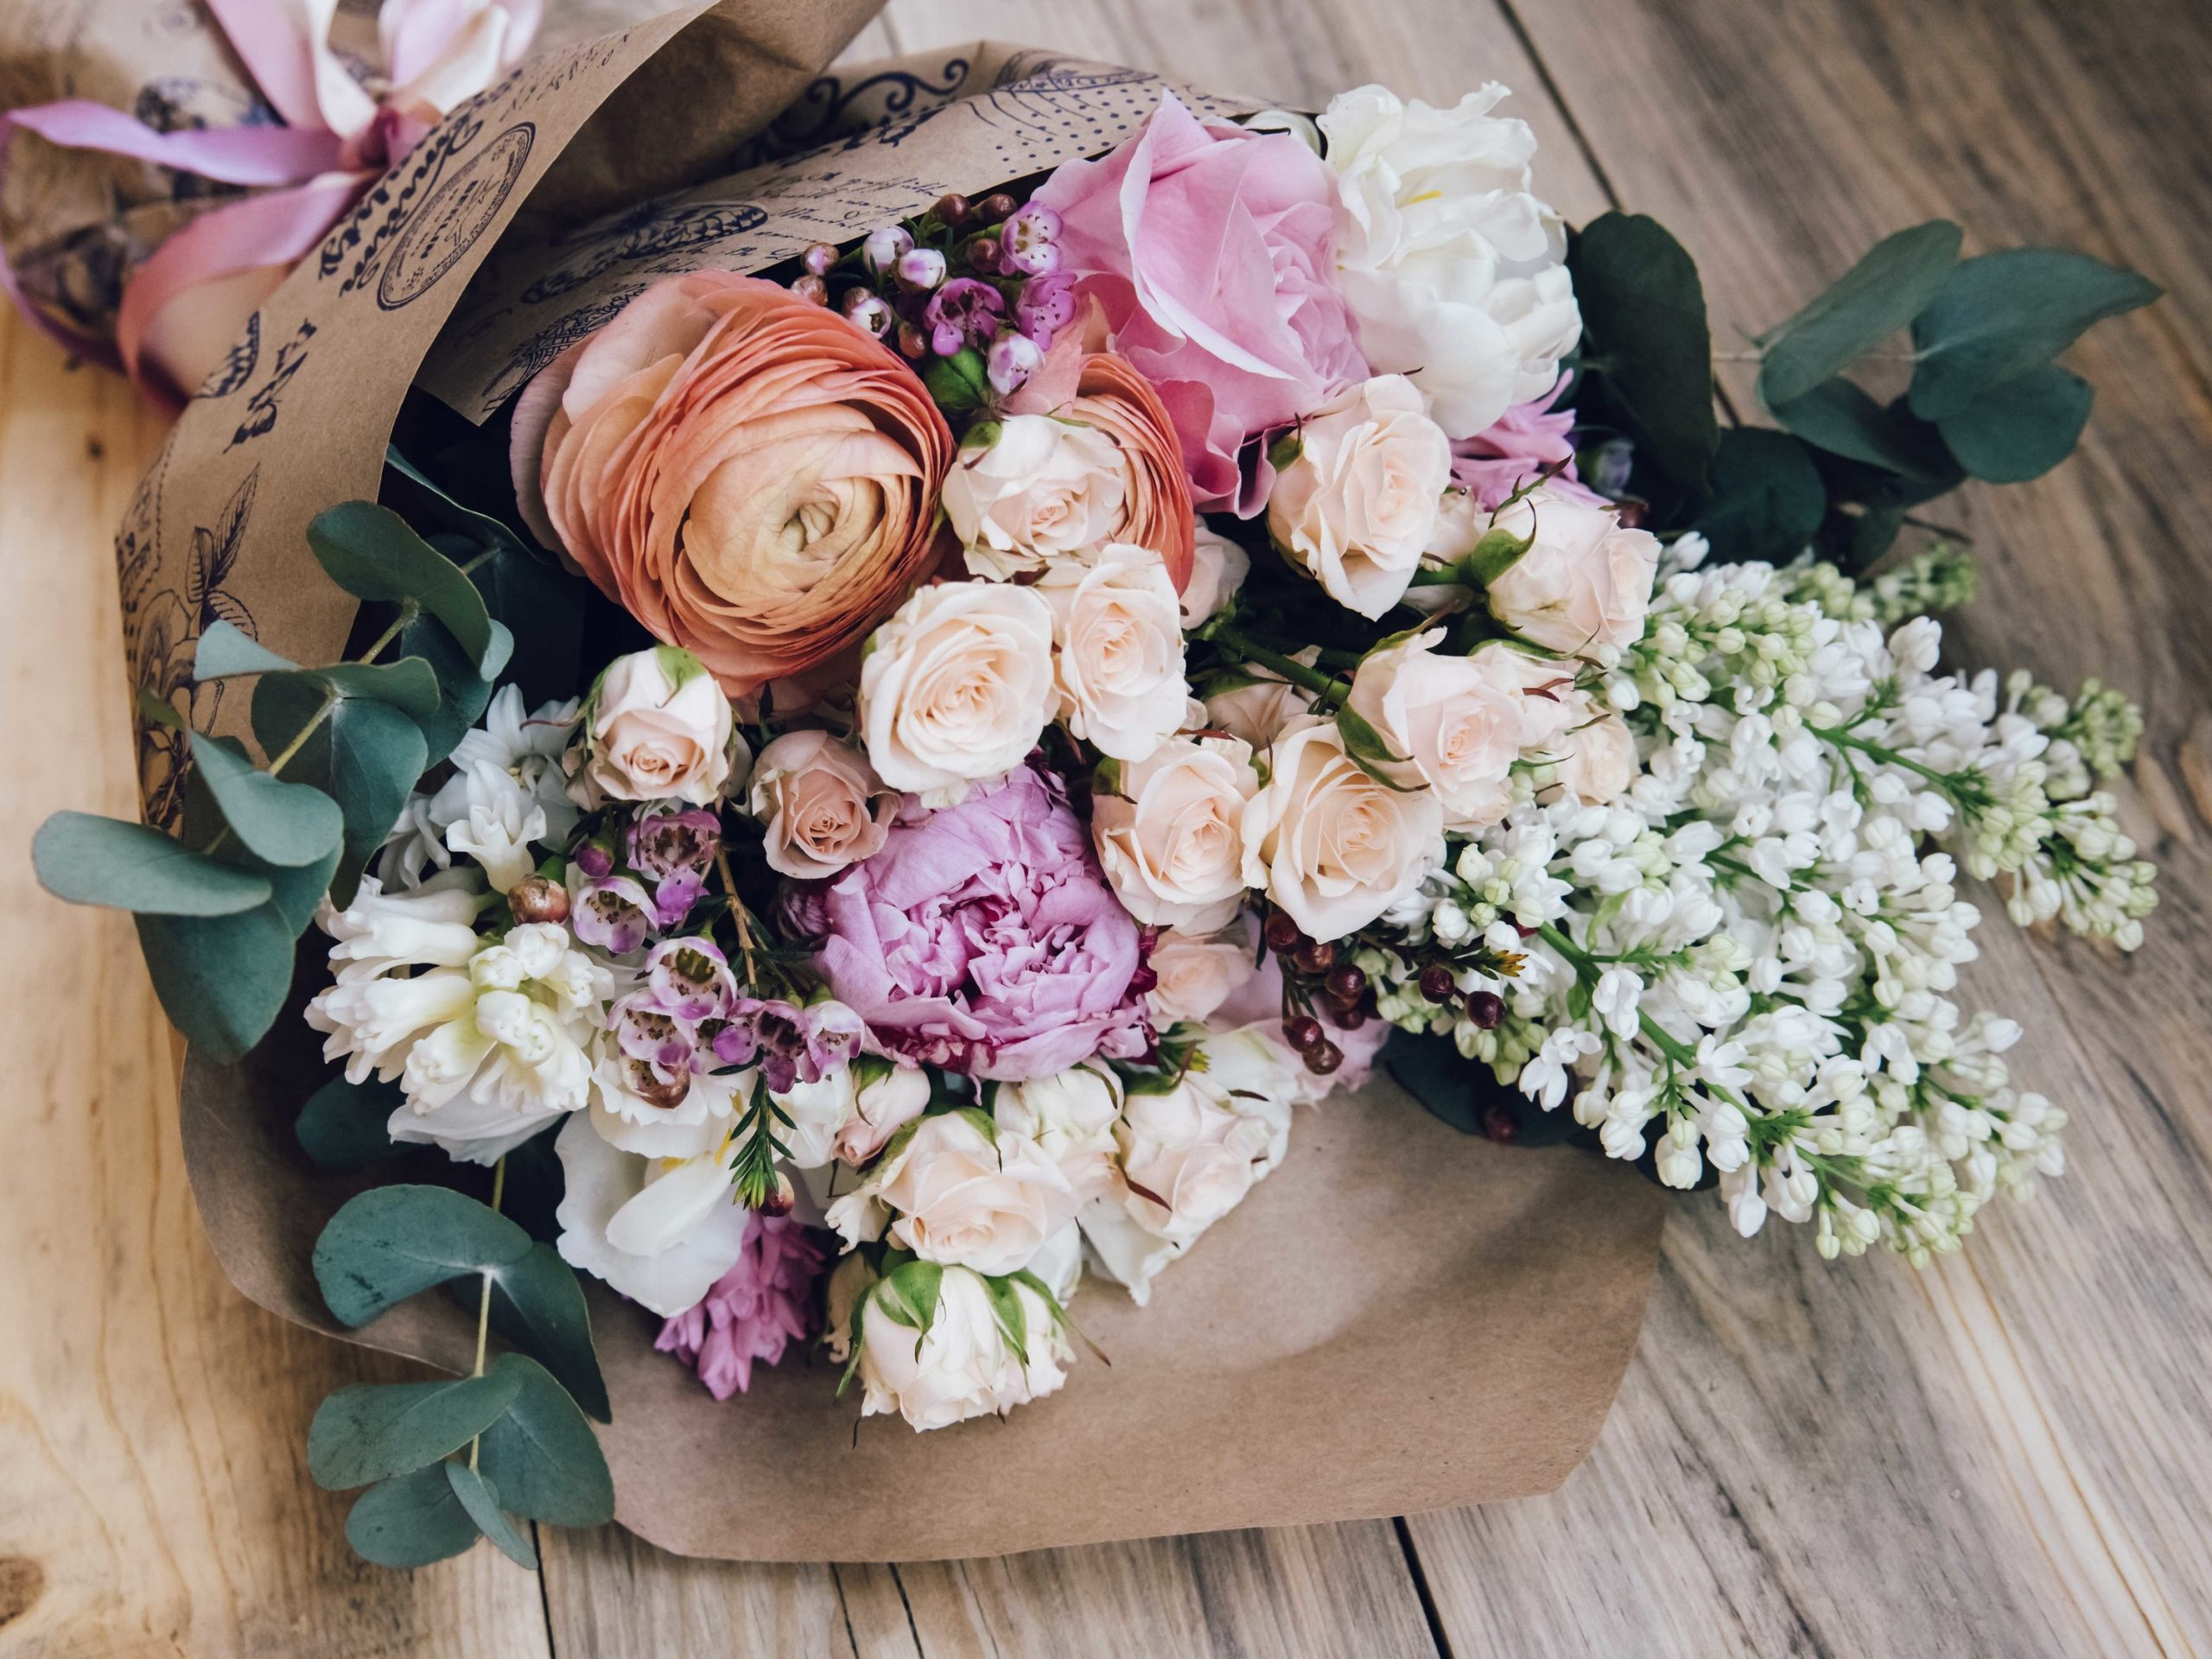 Two main benefits that you must know about the flowers